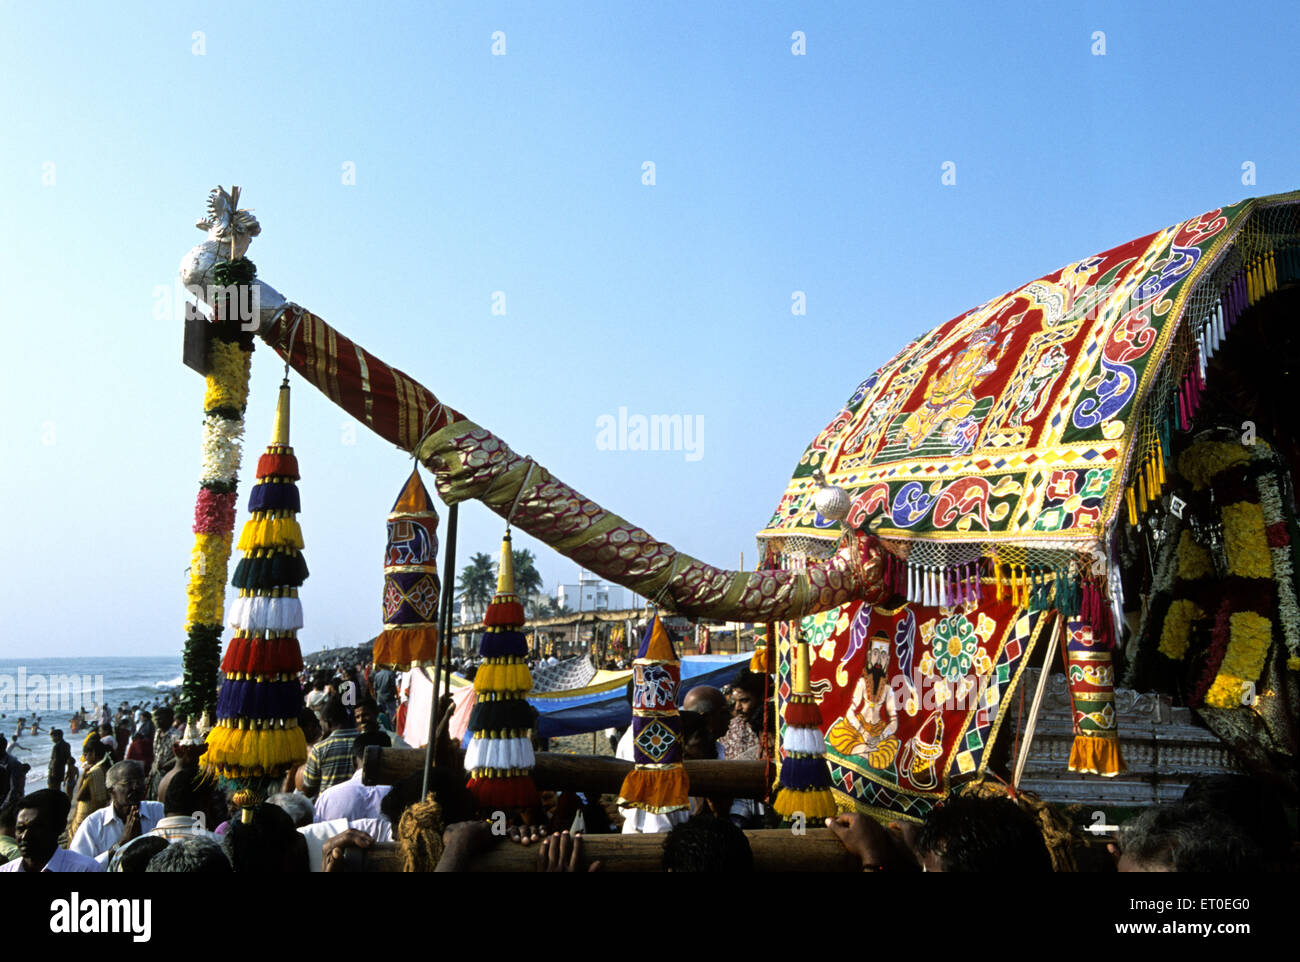 Masi magma festival at vaithi beach in Pondicherry ; Tamil Nadu ; India - Stock Image